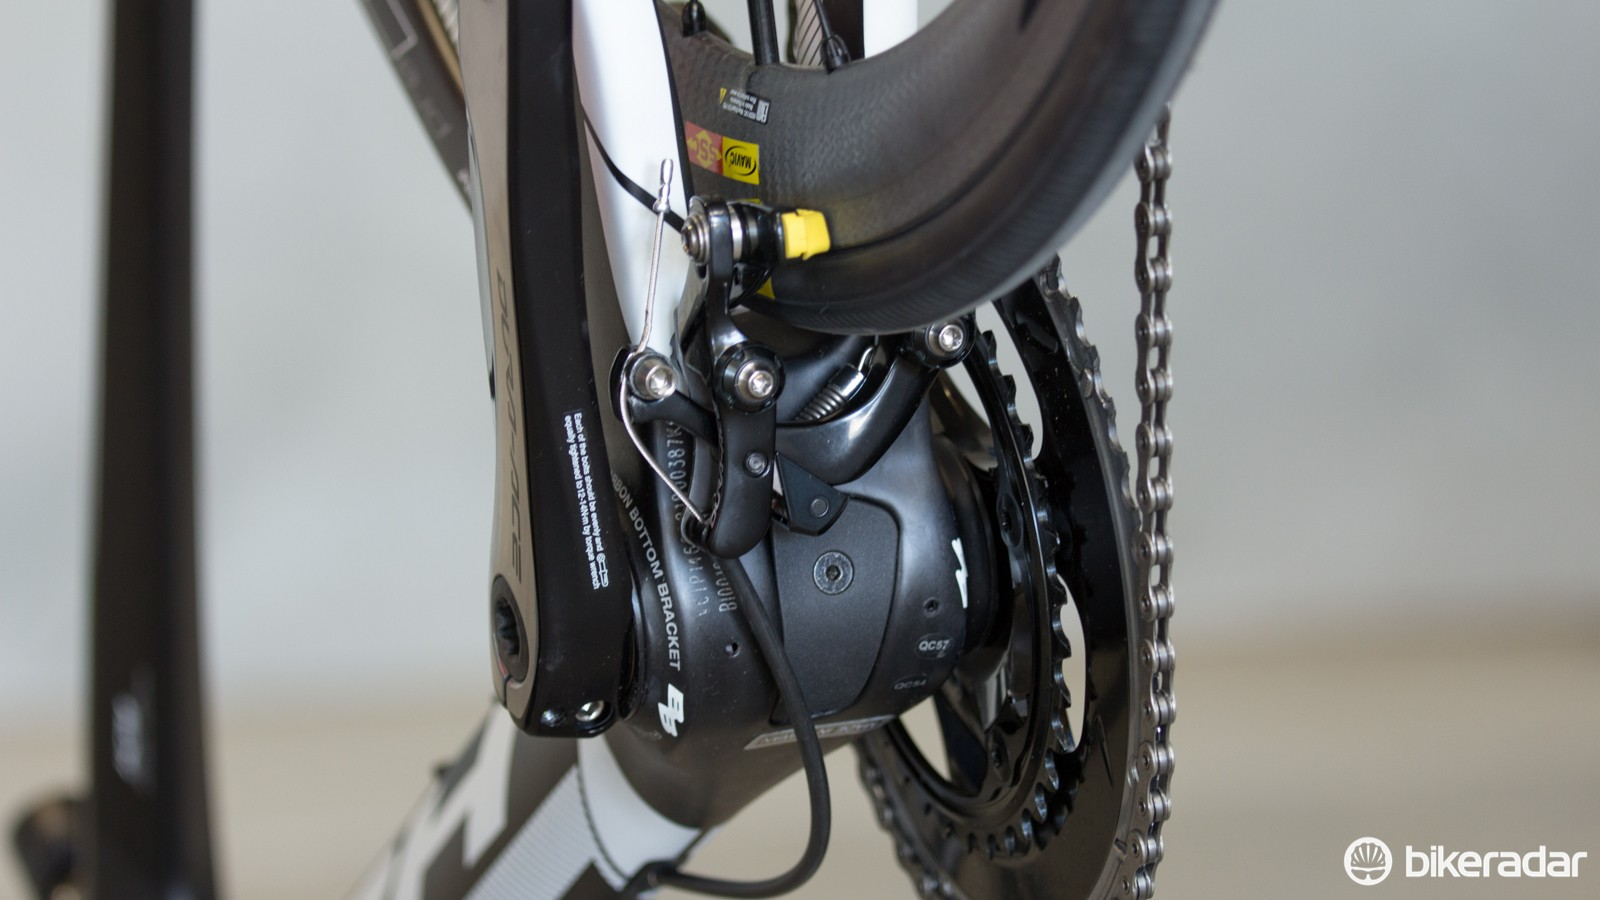 Tucked behind the bottom bracket, here's a closer look at the new chainstay mounted Shimano direct-mount rear brake